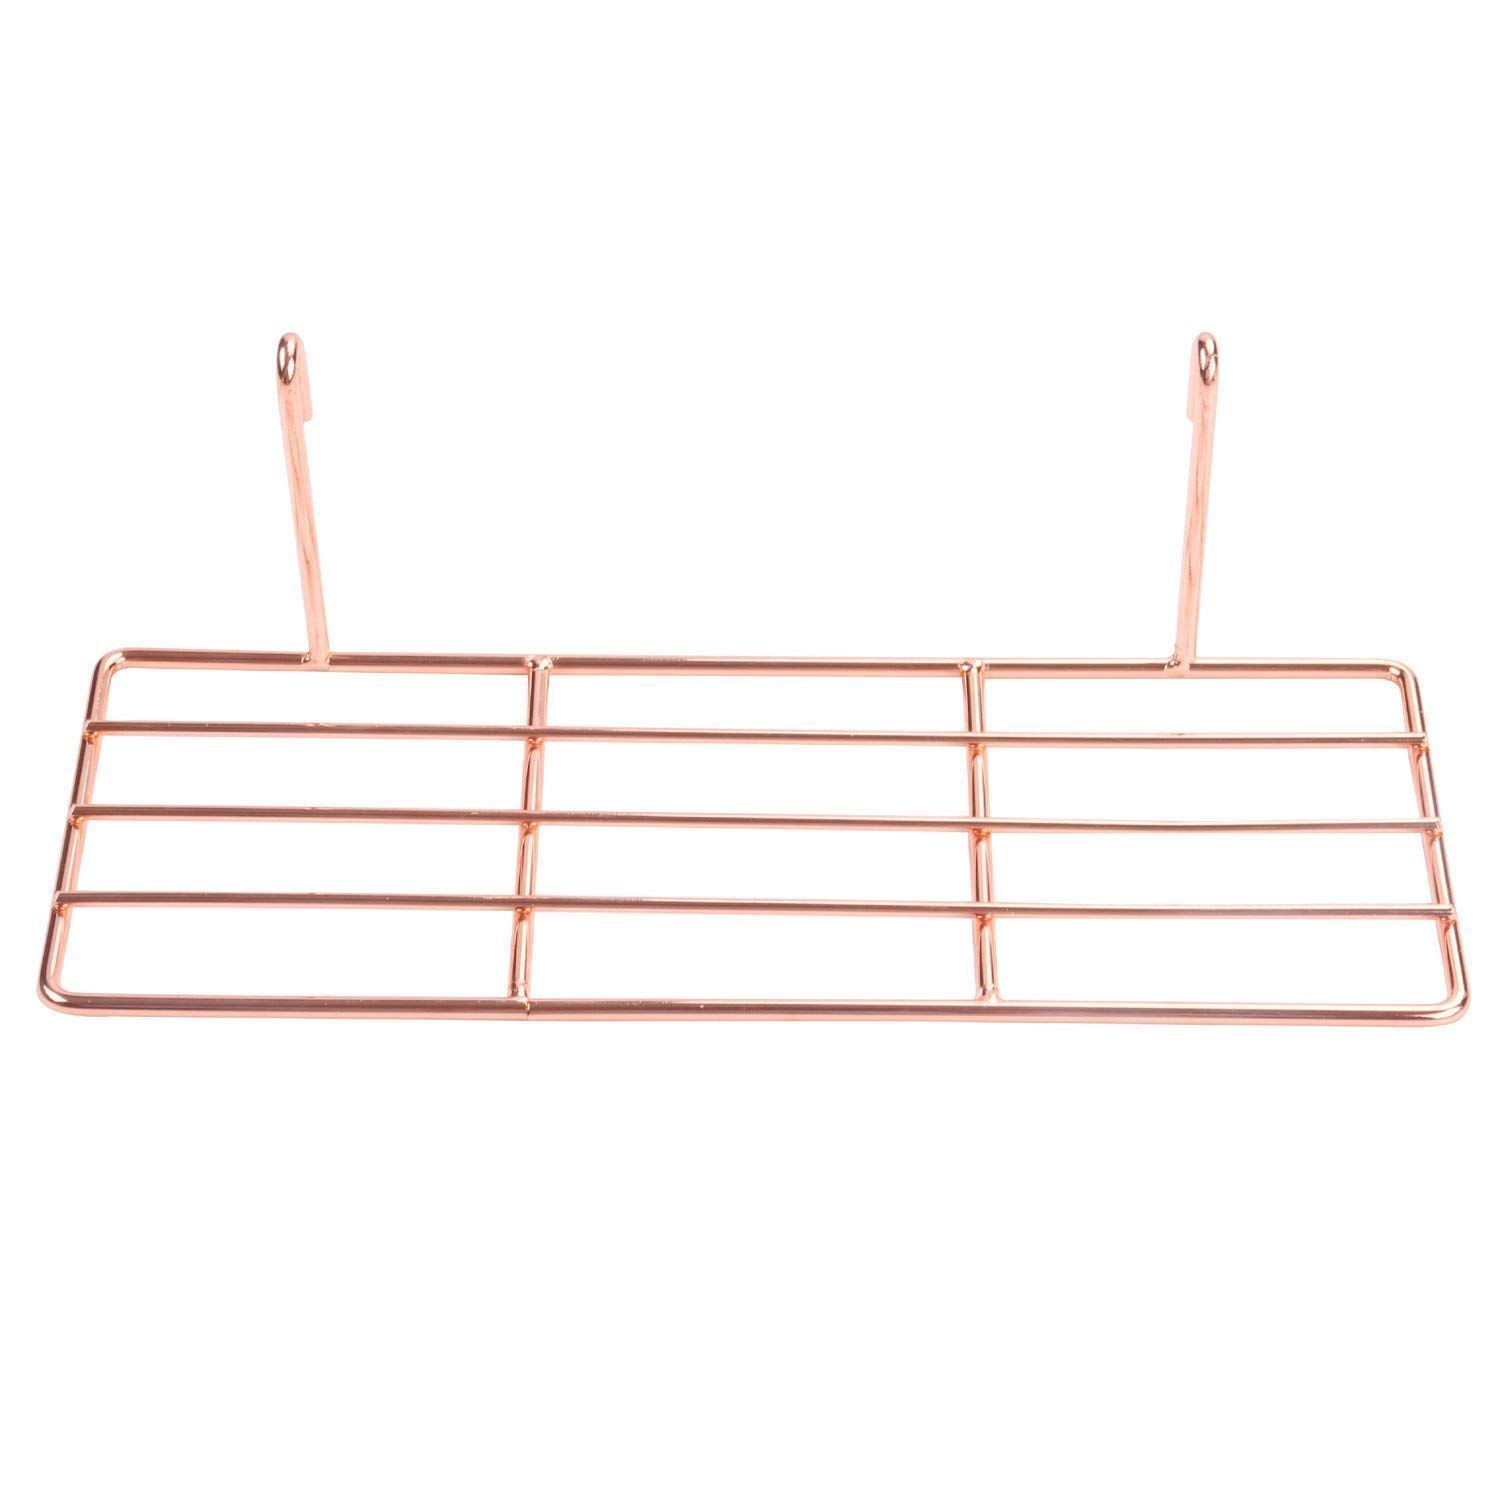 Nugoo Straight Shelf for Wall Grid Panel Decorative Wire Storage Organizer Rack for Flower Pot and Wall Decor Rose Gold Hanging Display Grid Wall Shelf Small Size